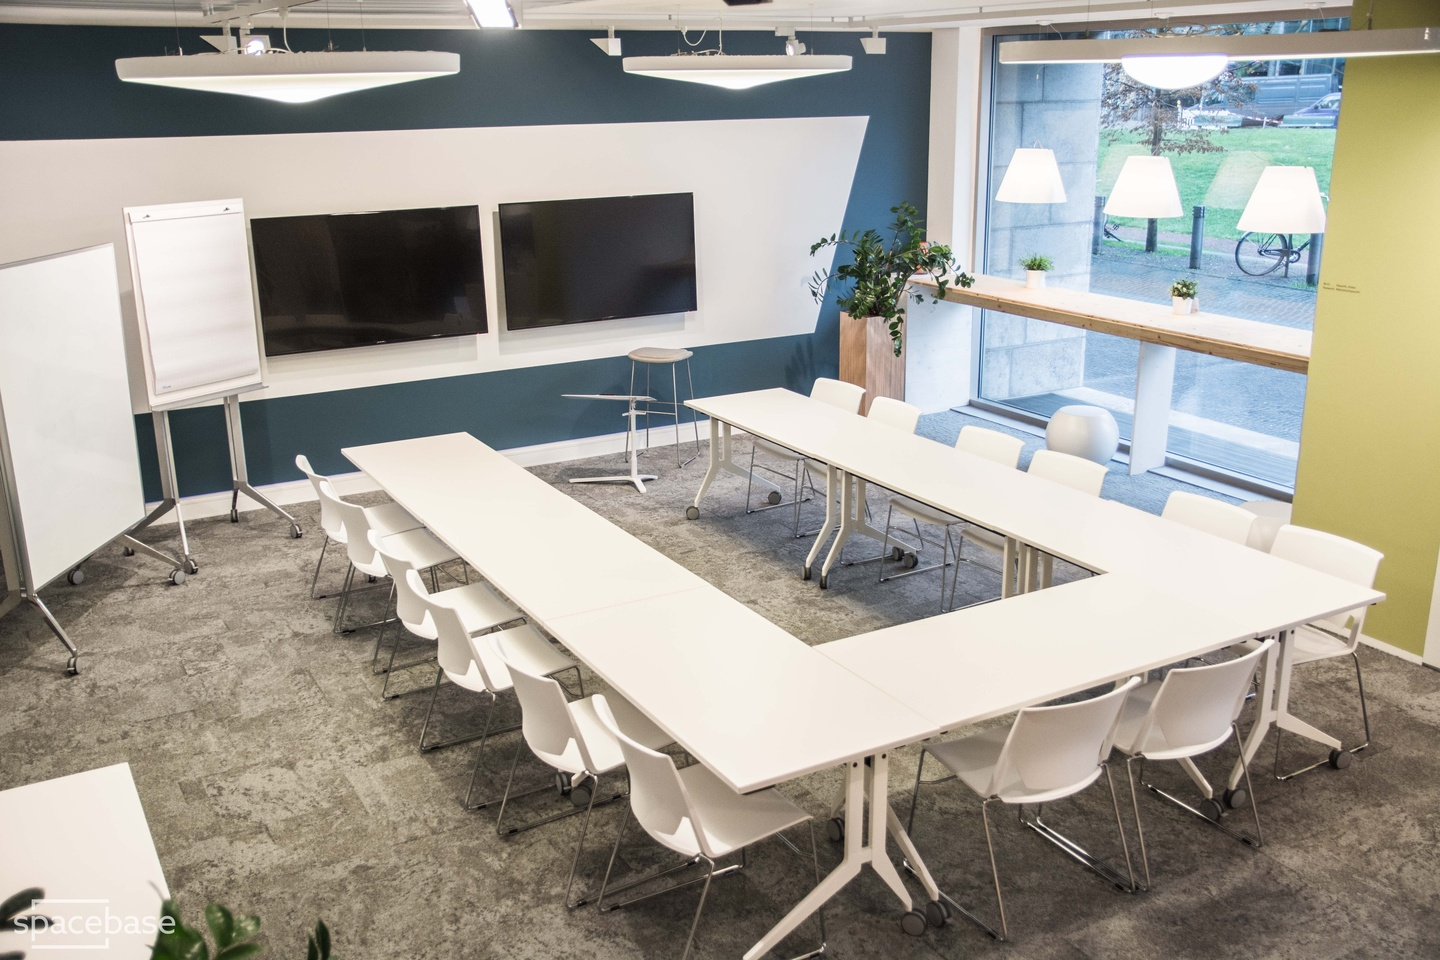 Berlin training rooms Salle de réunion OffX Work & Share - CoOffice Space image 2